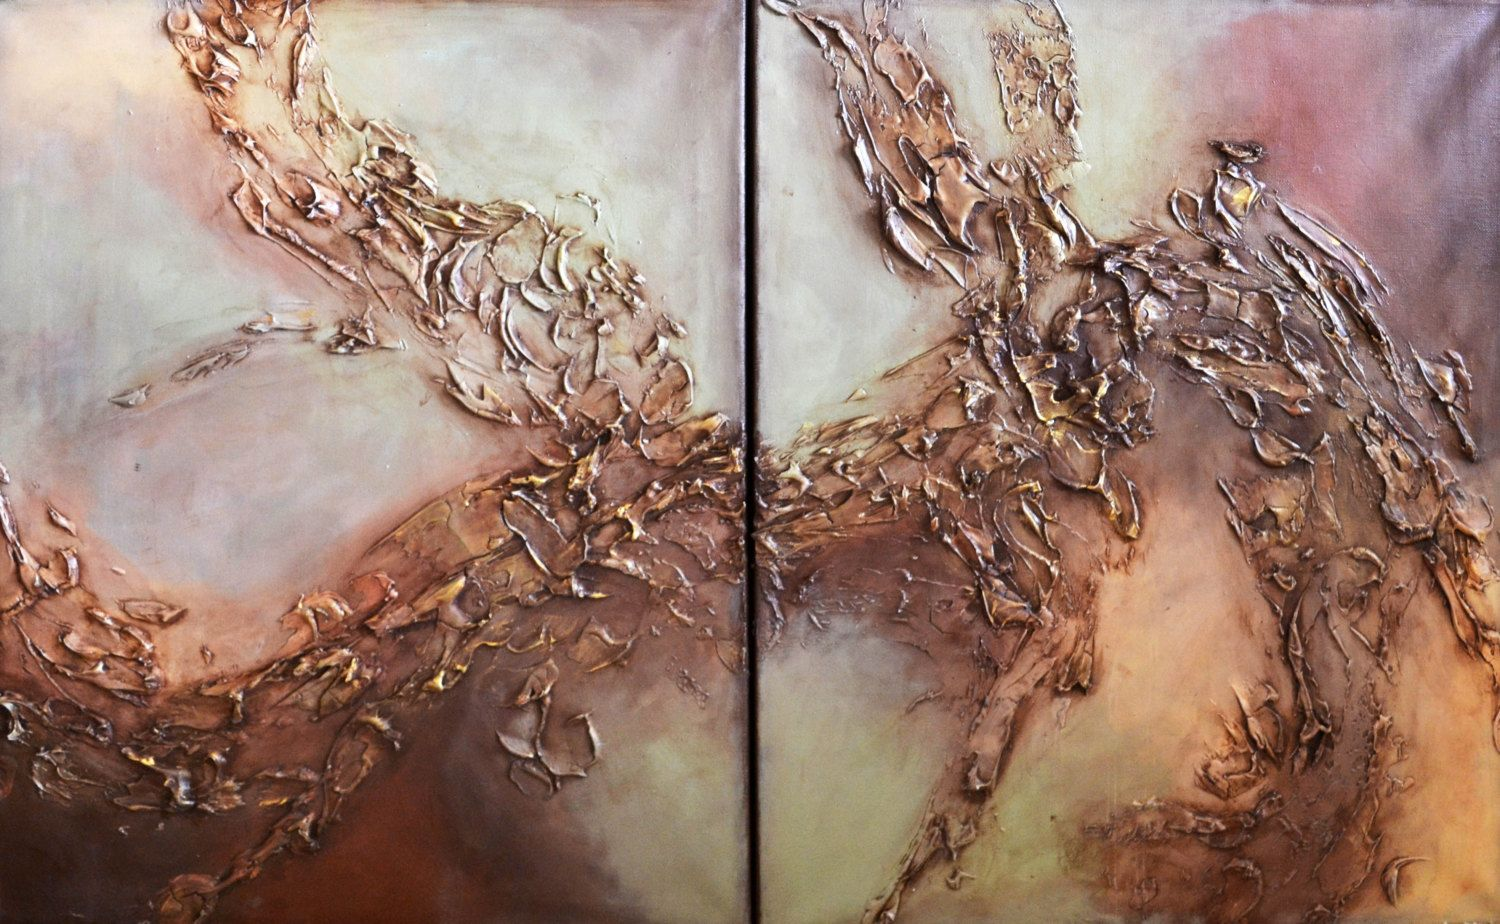 """Recreatable Payment Plan Avaliable (2) 30x24x1.5"""" Original Abstract Modern Traditional Painting  https://www.etsy.com/listing/127922678/recreatable-payment-plan-avaliable-2?ref=shop_home_active_13"""